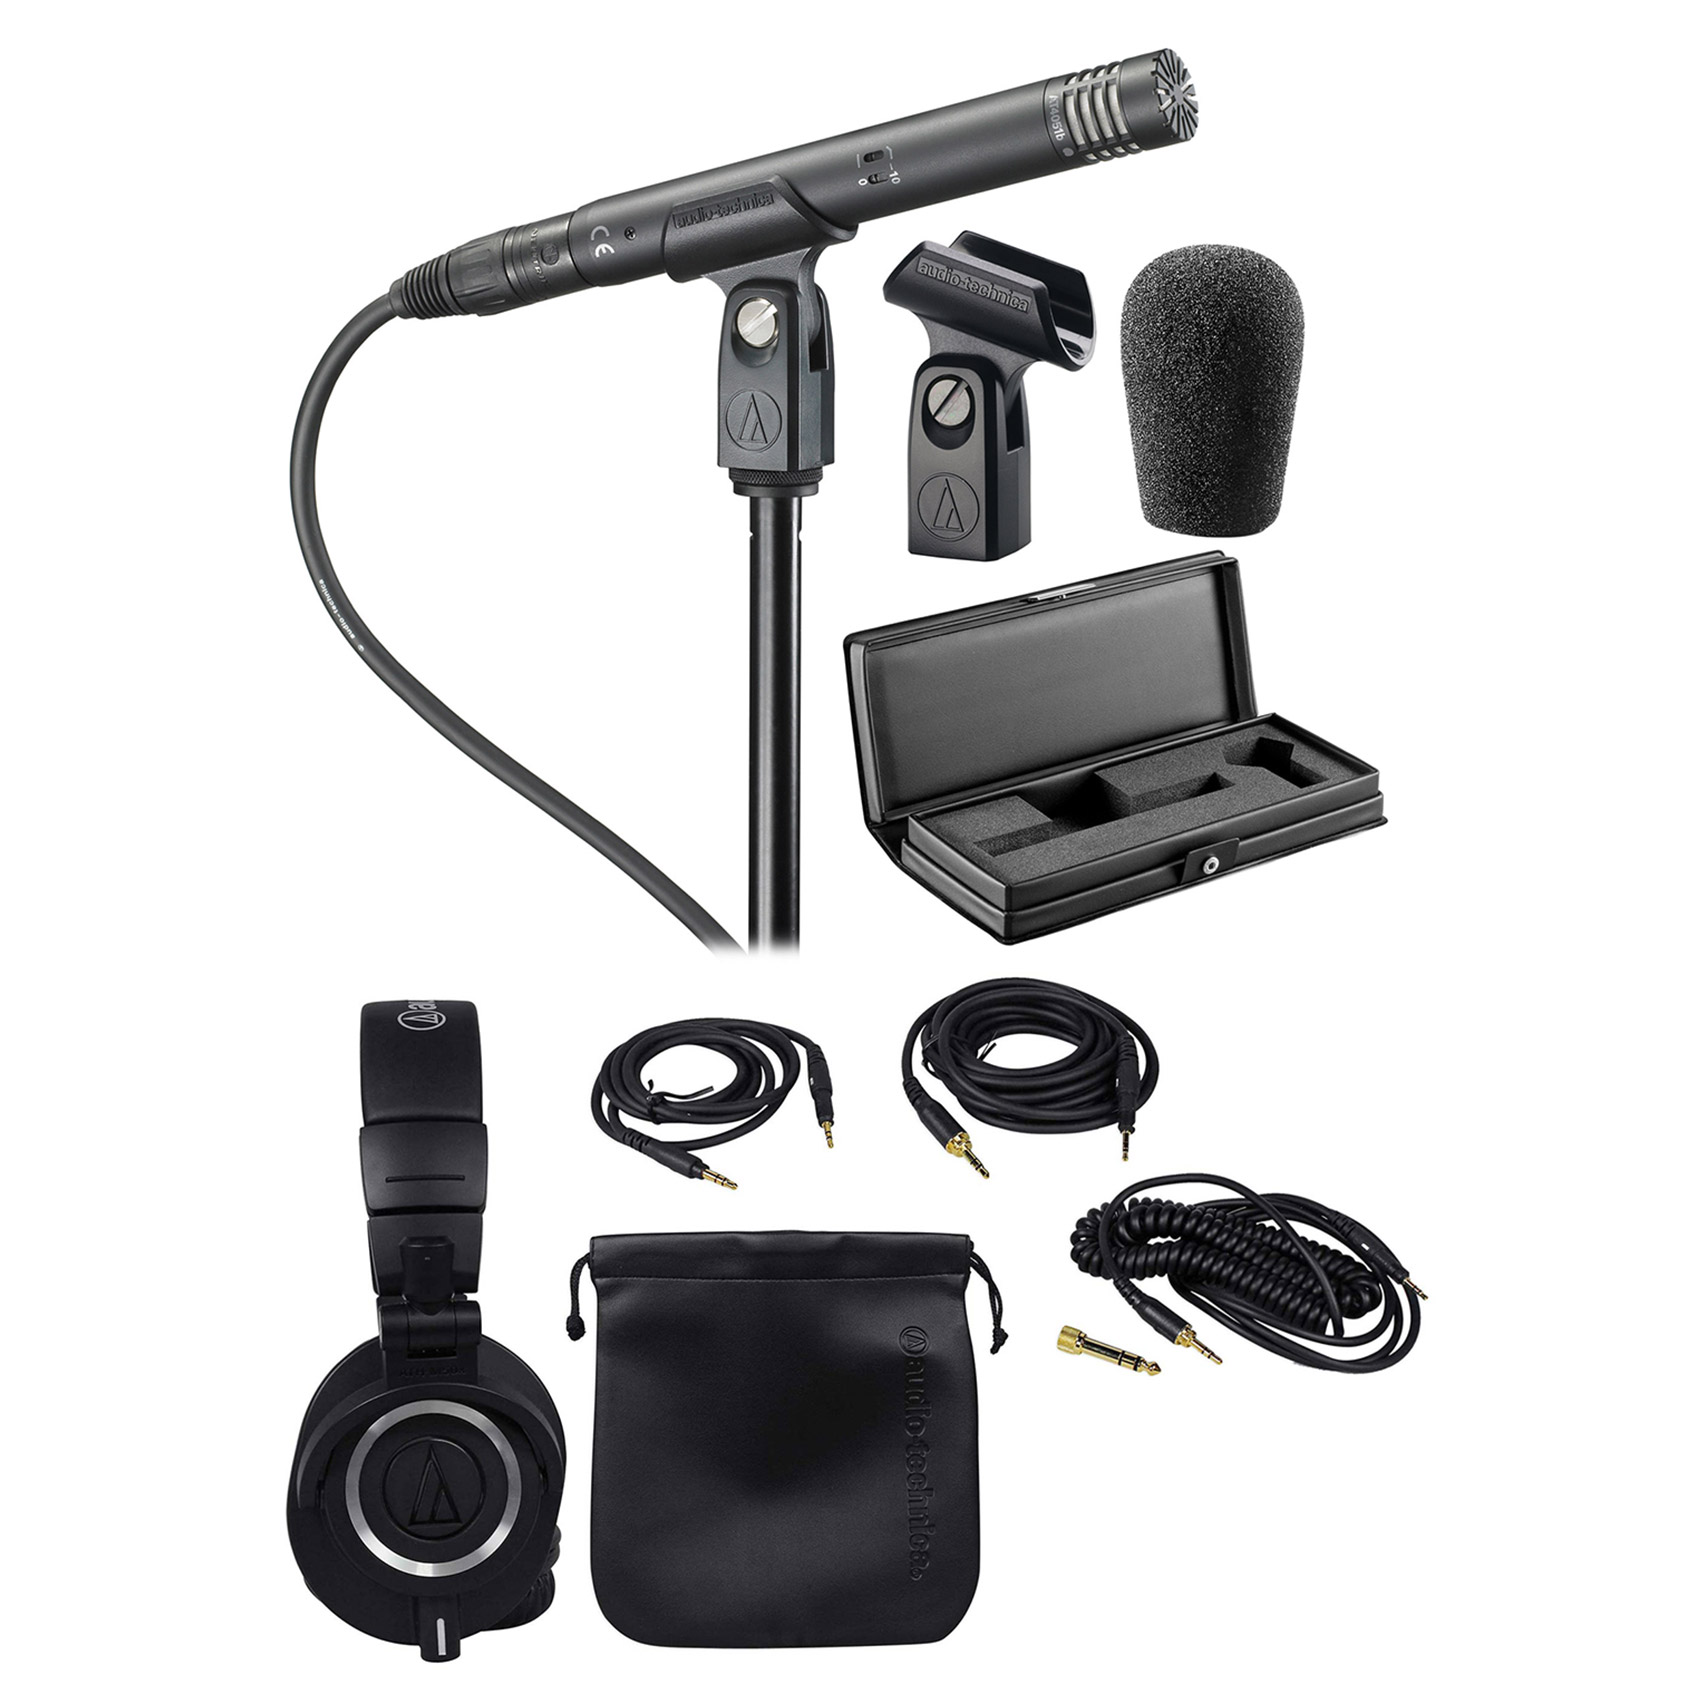 Audio Technica AT4051B Condenser Microphone w Shockmount + Mic Case + Headphones by Audio-Technica